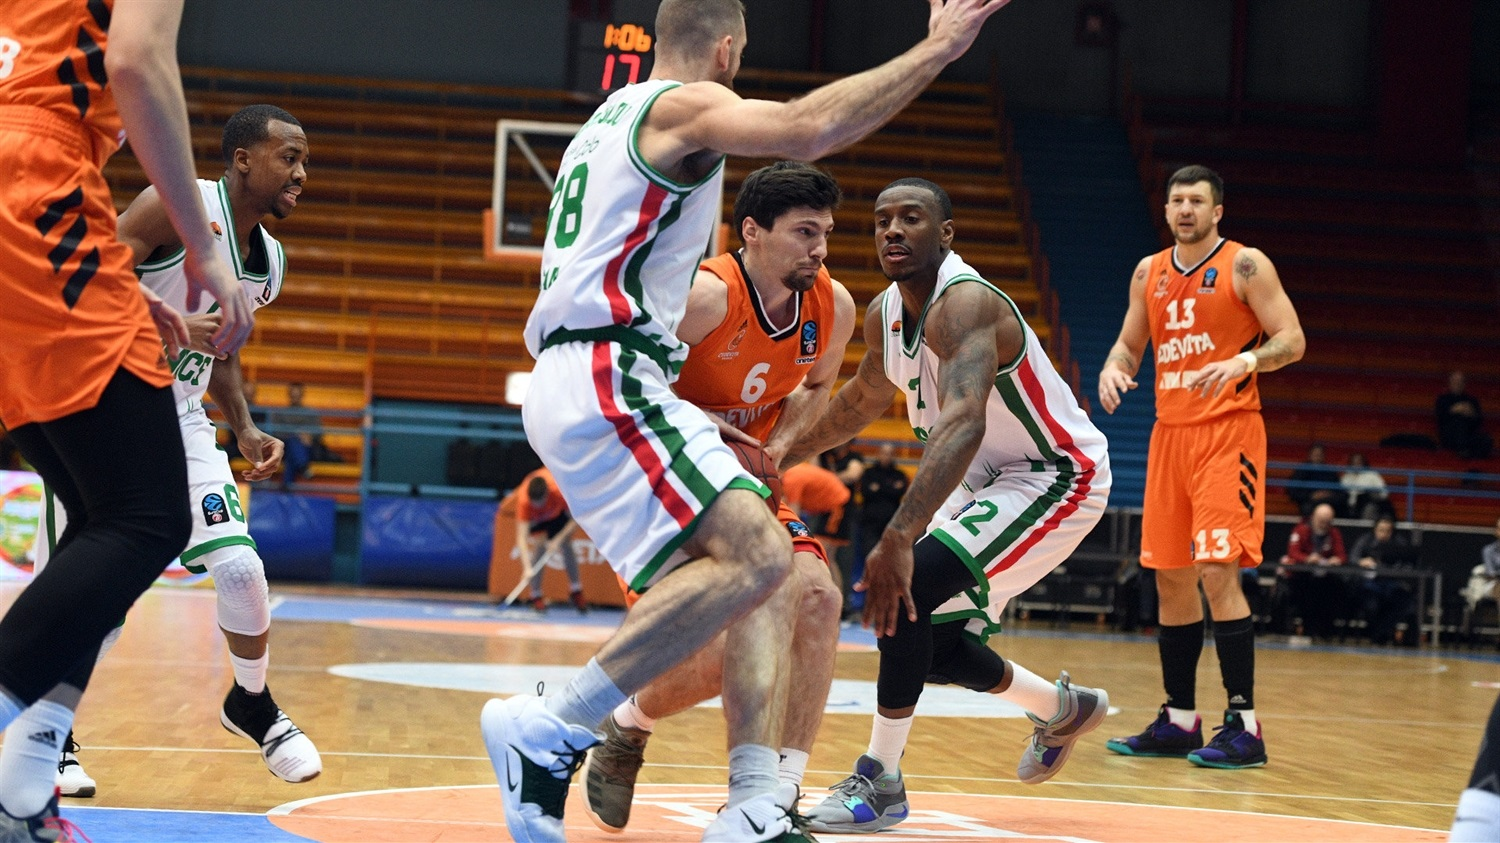 Toni Katic - Cedevita Zagreb (photo UNICS) - EC18